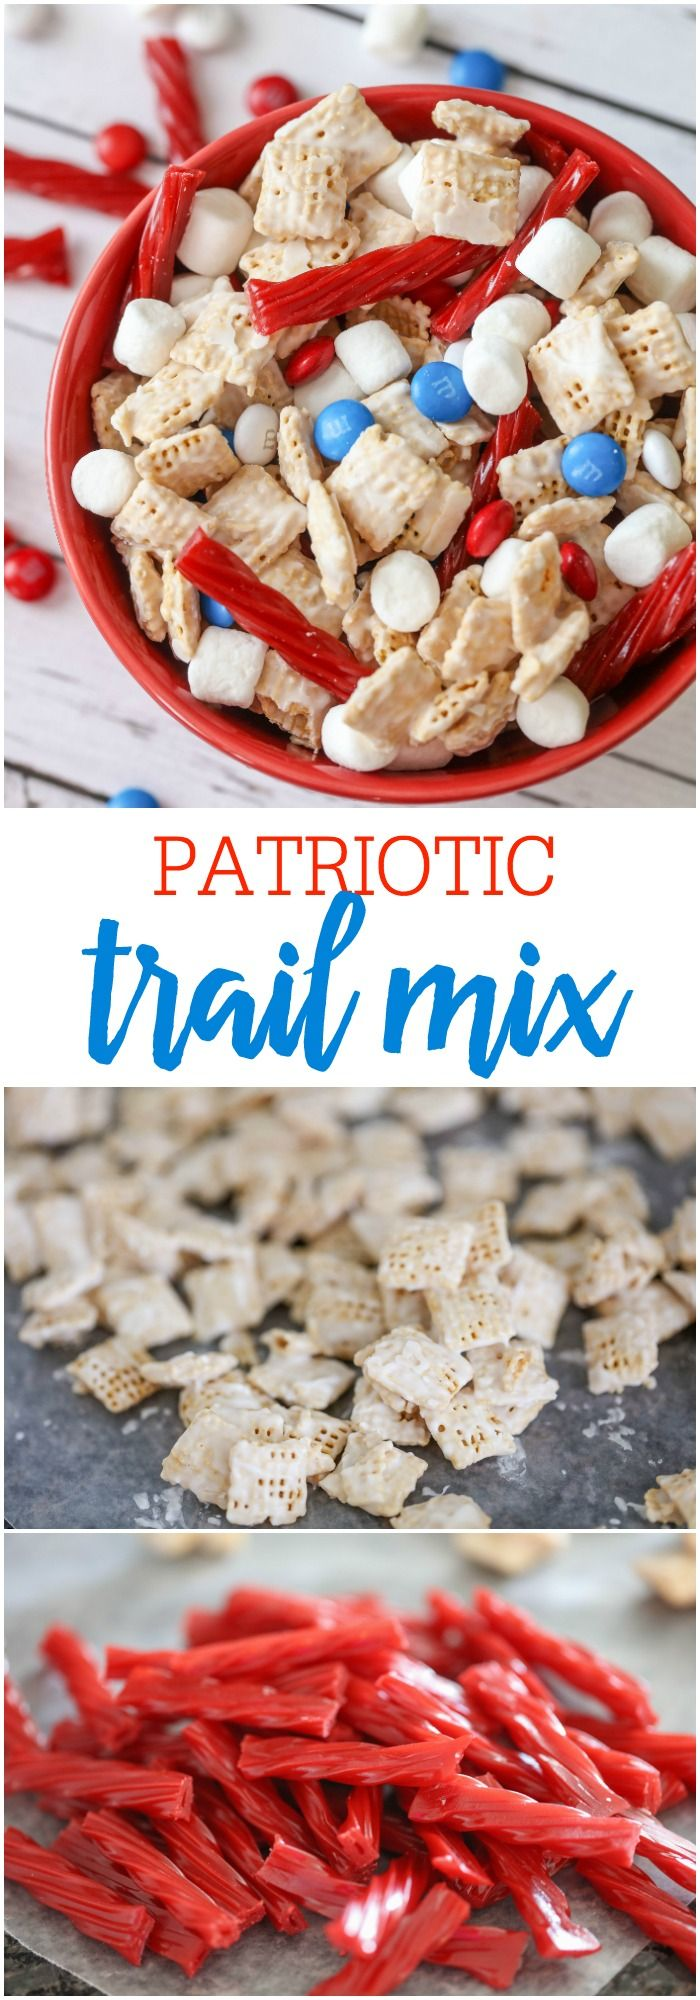 Patriotic Trail Mix